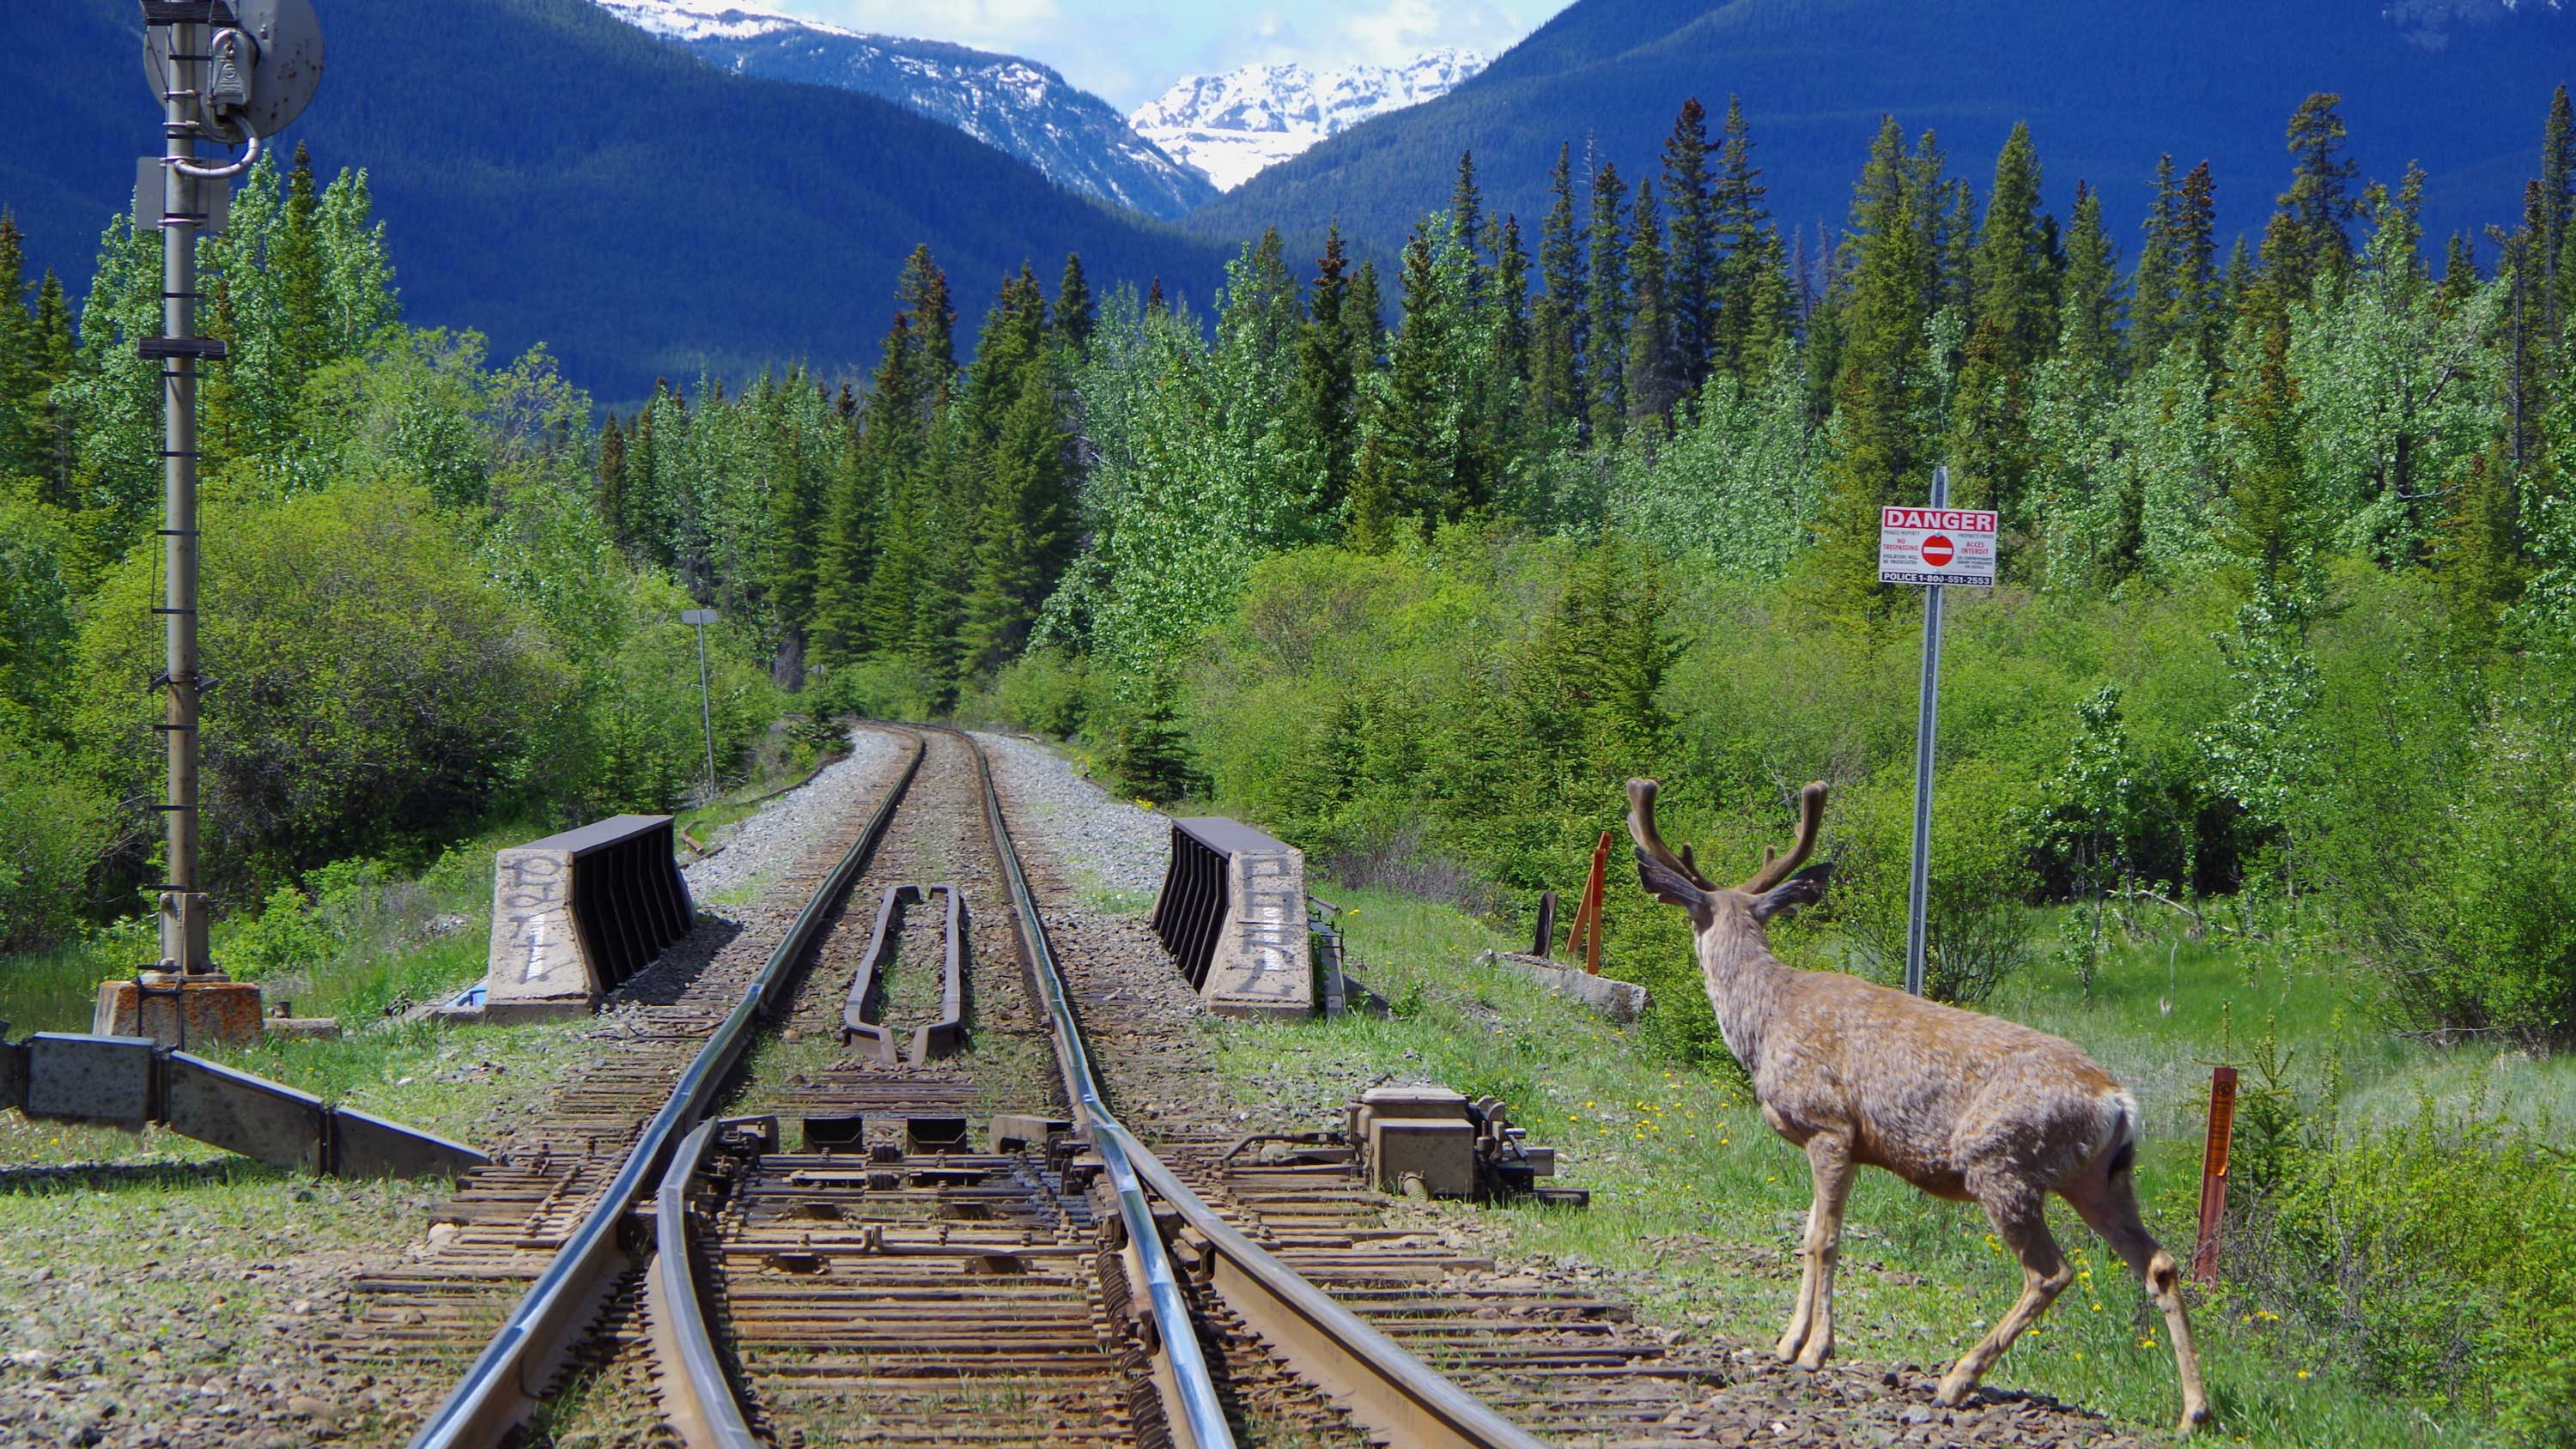 A deer next to a railroad in the rockies